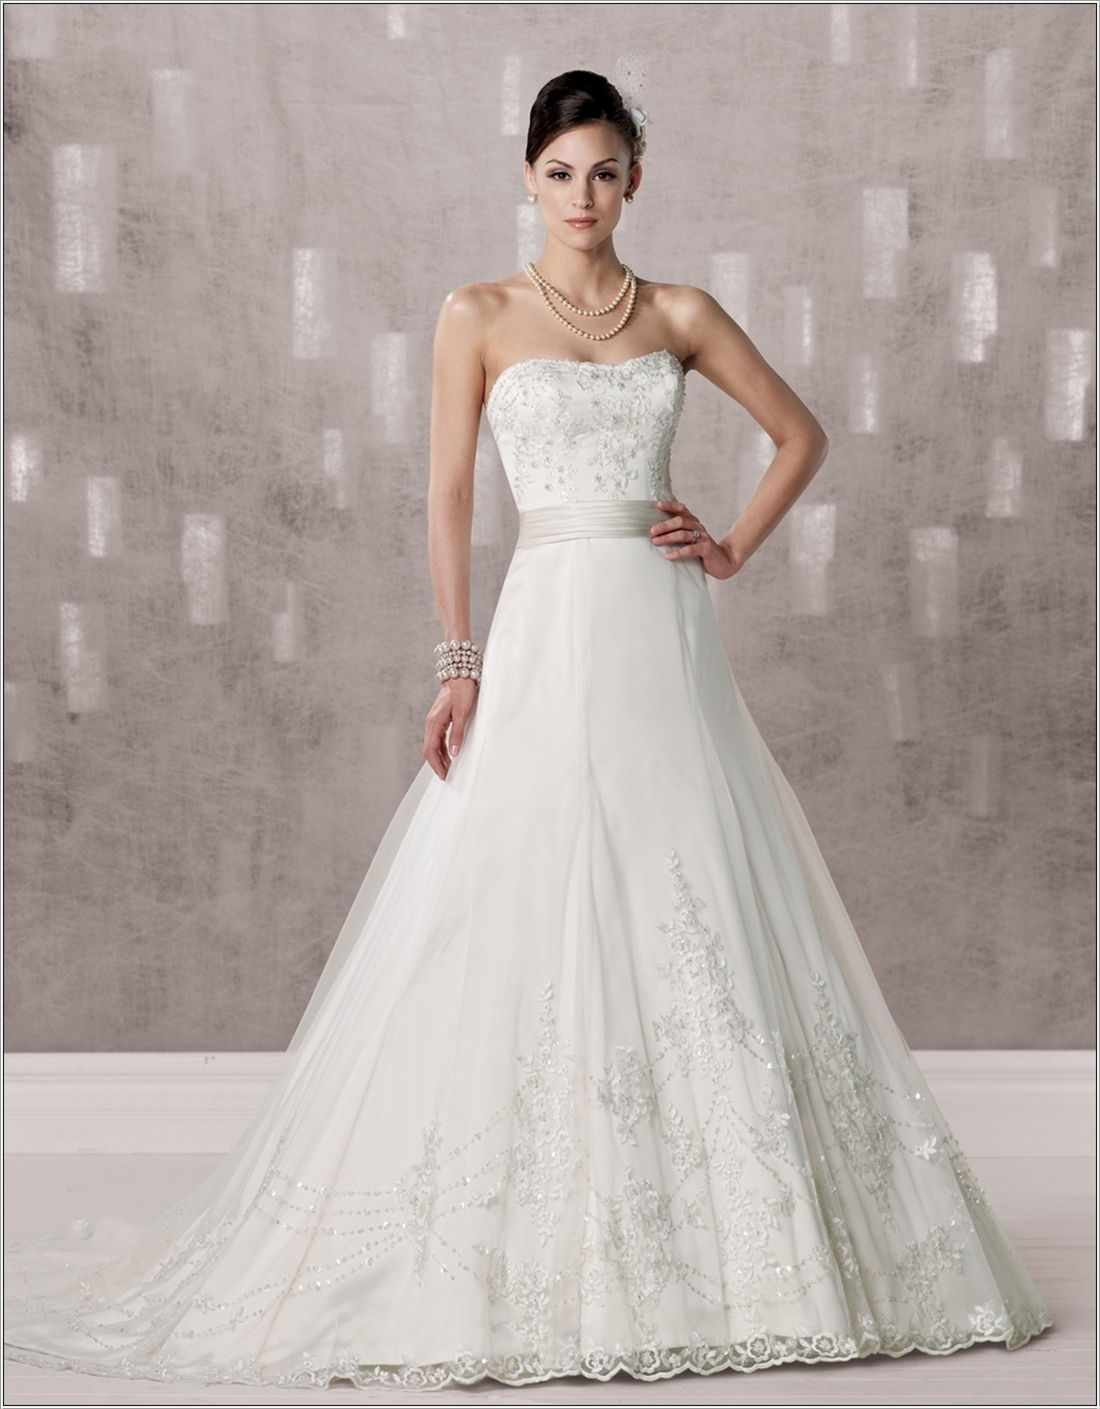 This one is a strapless trumpet gown which is made by tulle netting